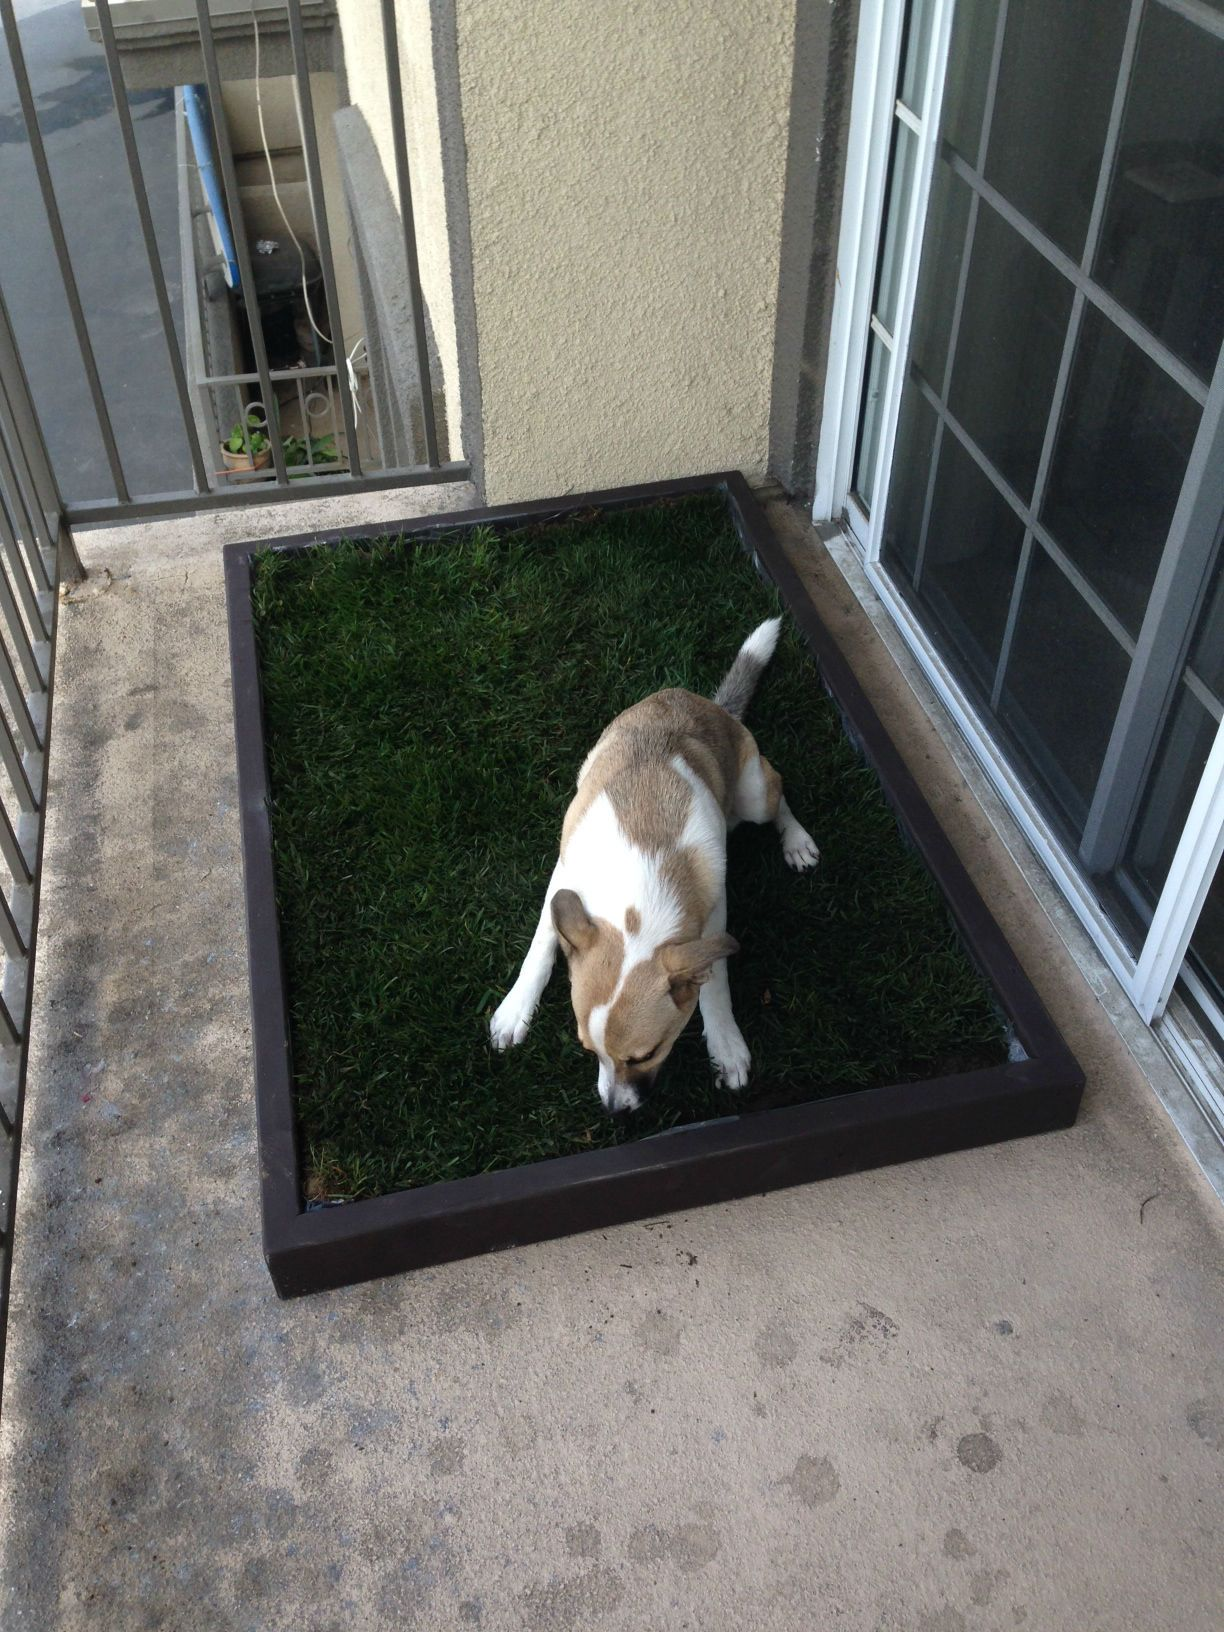 Doggy and the Large dog litter box with real grass fits on this patio perfectly. See more at www.doggyandthecity.com. #photooftheday #dog #puppy #pup #dogsofpinterest #pet #pets #animal #animals #petlovers #dogsitting #ilovemydog #dogoftheday #lovedogs #lovepuppies #doglover #cutedog #cutedogs #dyipetprojects #lovedogs #doglovers #doggies #doggiestyle #dogsandpuppies #petsmart #petcrafts #petsdiy #apartmentdiy #dogpottyarea #dogpottybox #dogpottypatch #dogpottytraining #petpotty